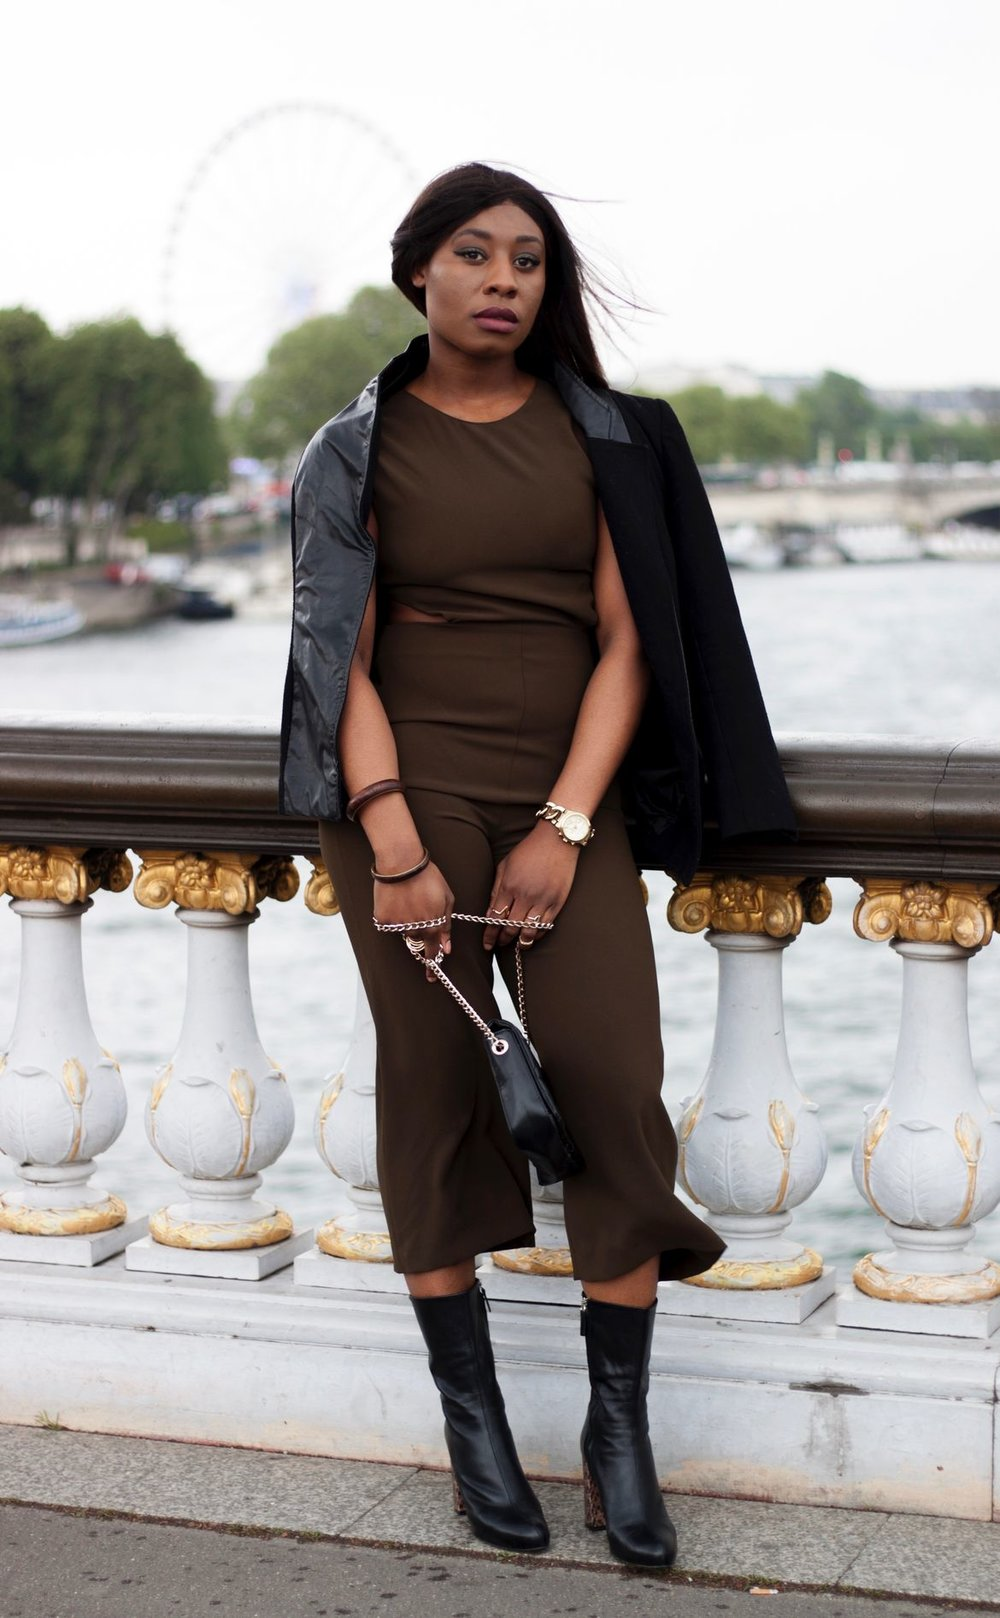 Fashion from Paris, Paris Fashion Style, European Fashion Blogger, Worldwide Fashion, Summer Fashion Blog, Women's Fashion Blog, Summer Fashion Inspiration, Women's Summer Style, Golden Connexion